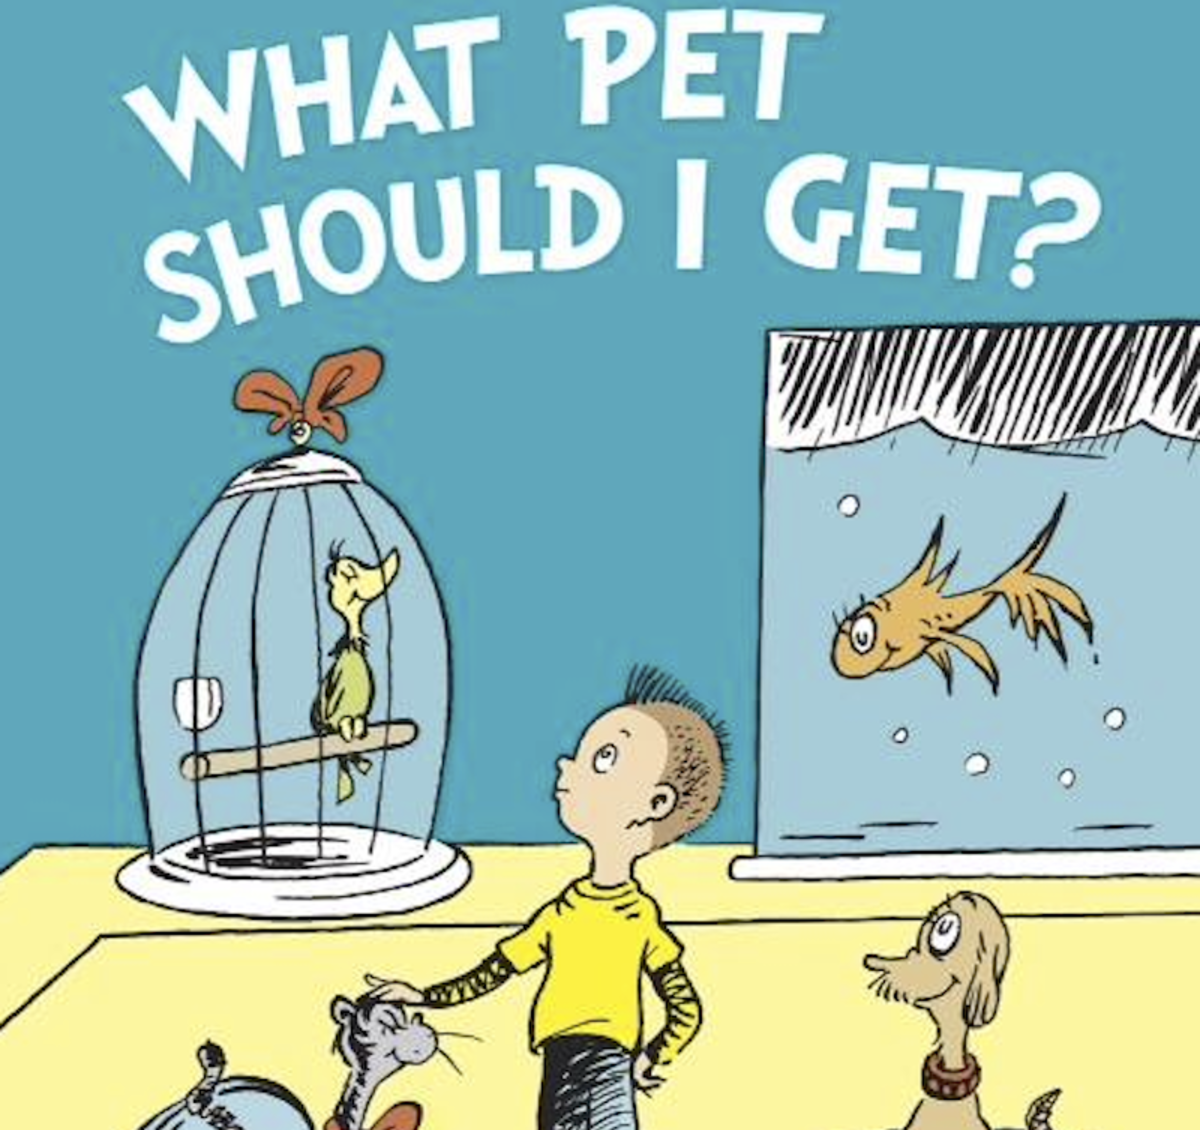 Dr. Seuss' new book to be published July 28, 2015.